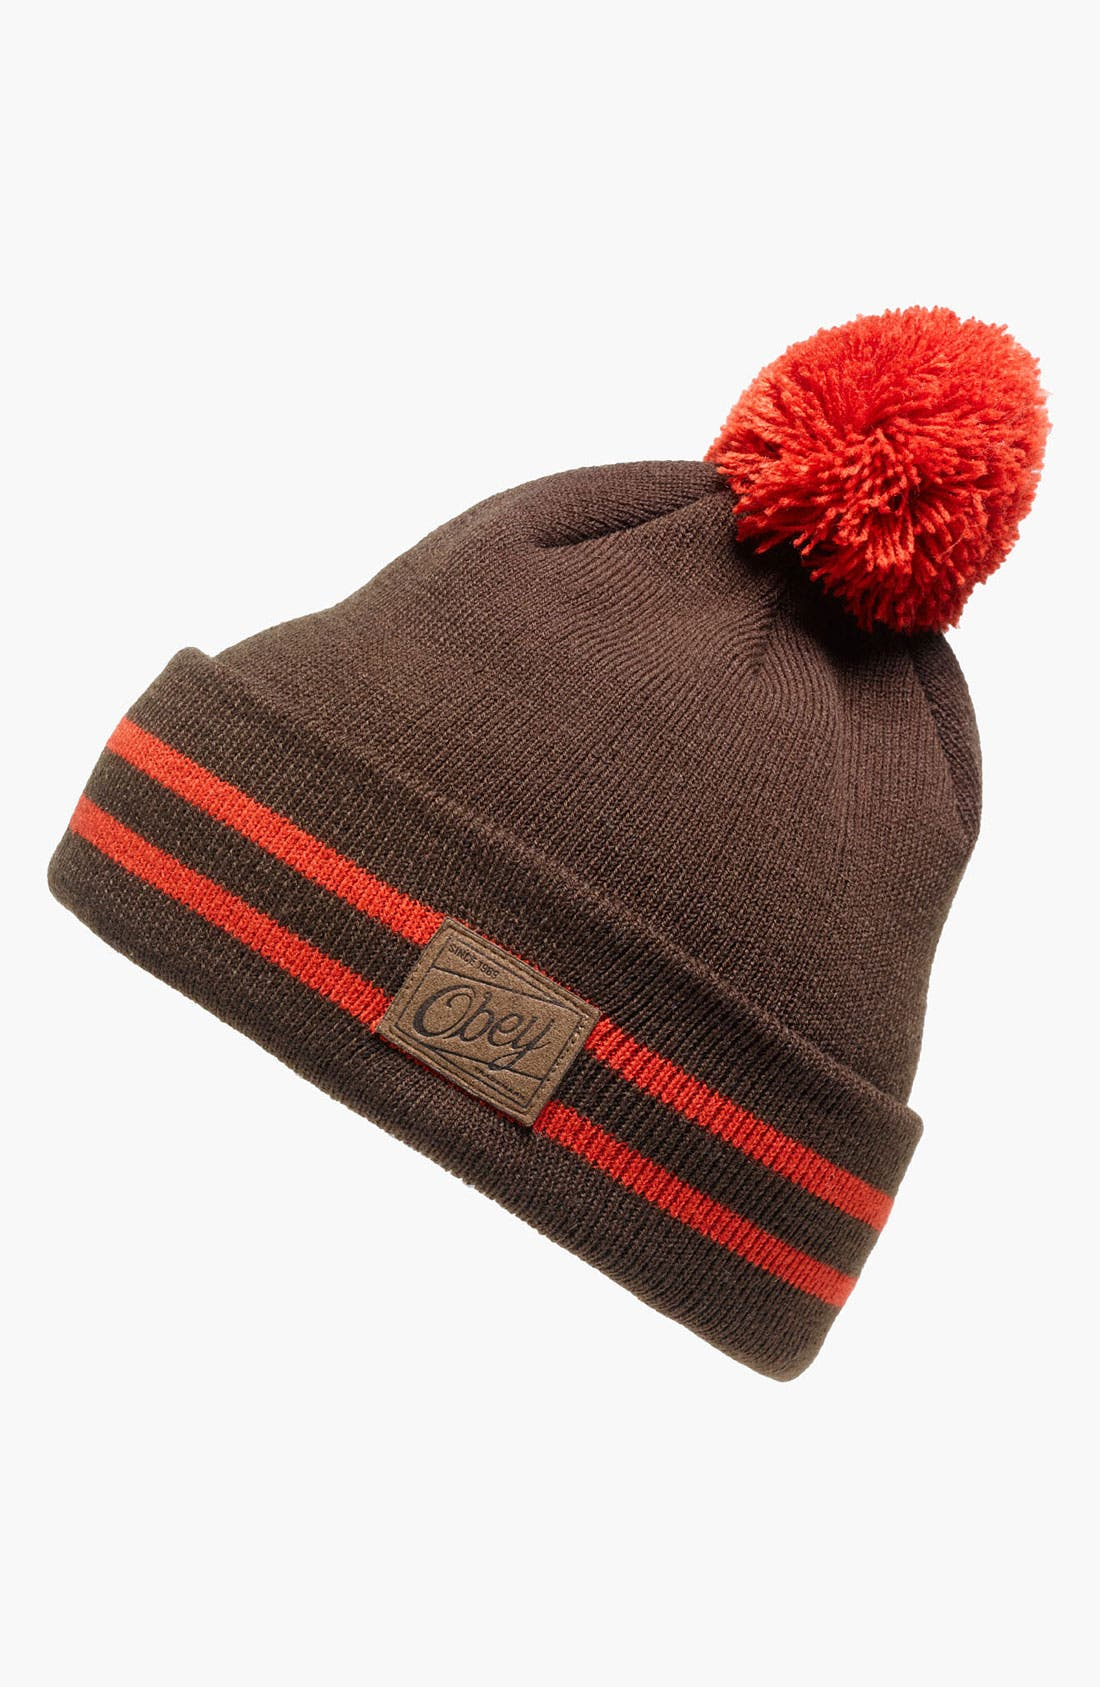 Main Image - Obey 'Tilden' Knit Cap